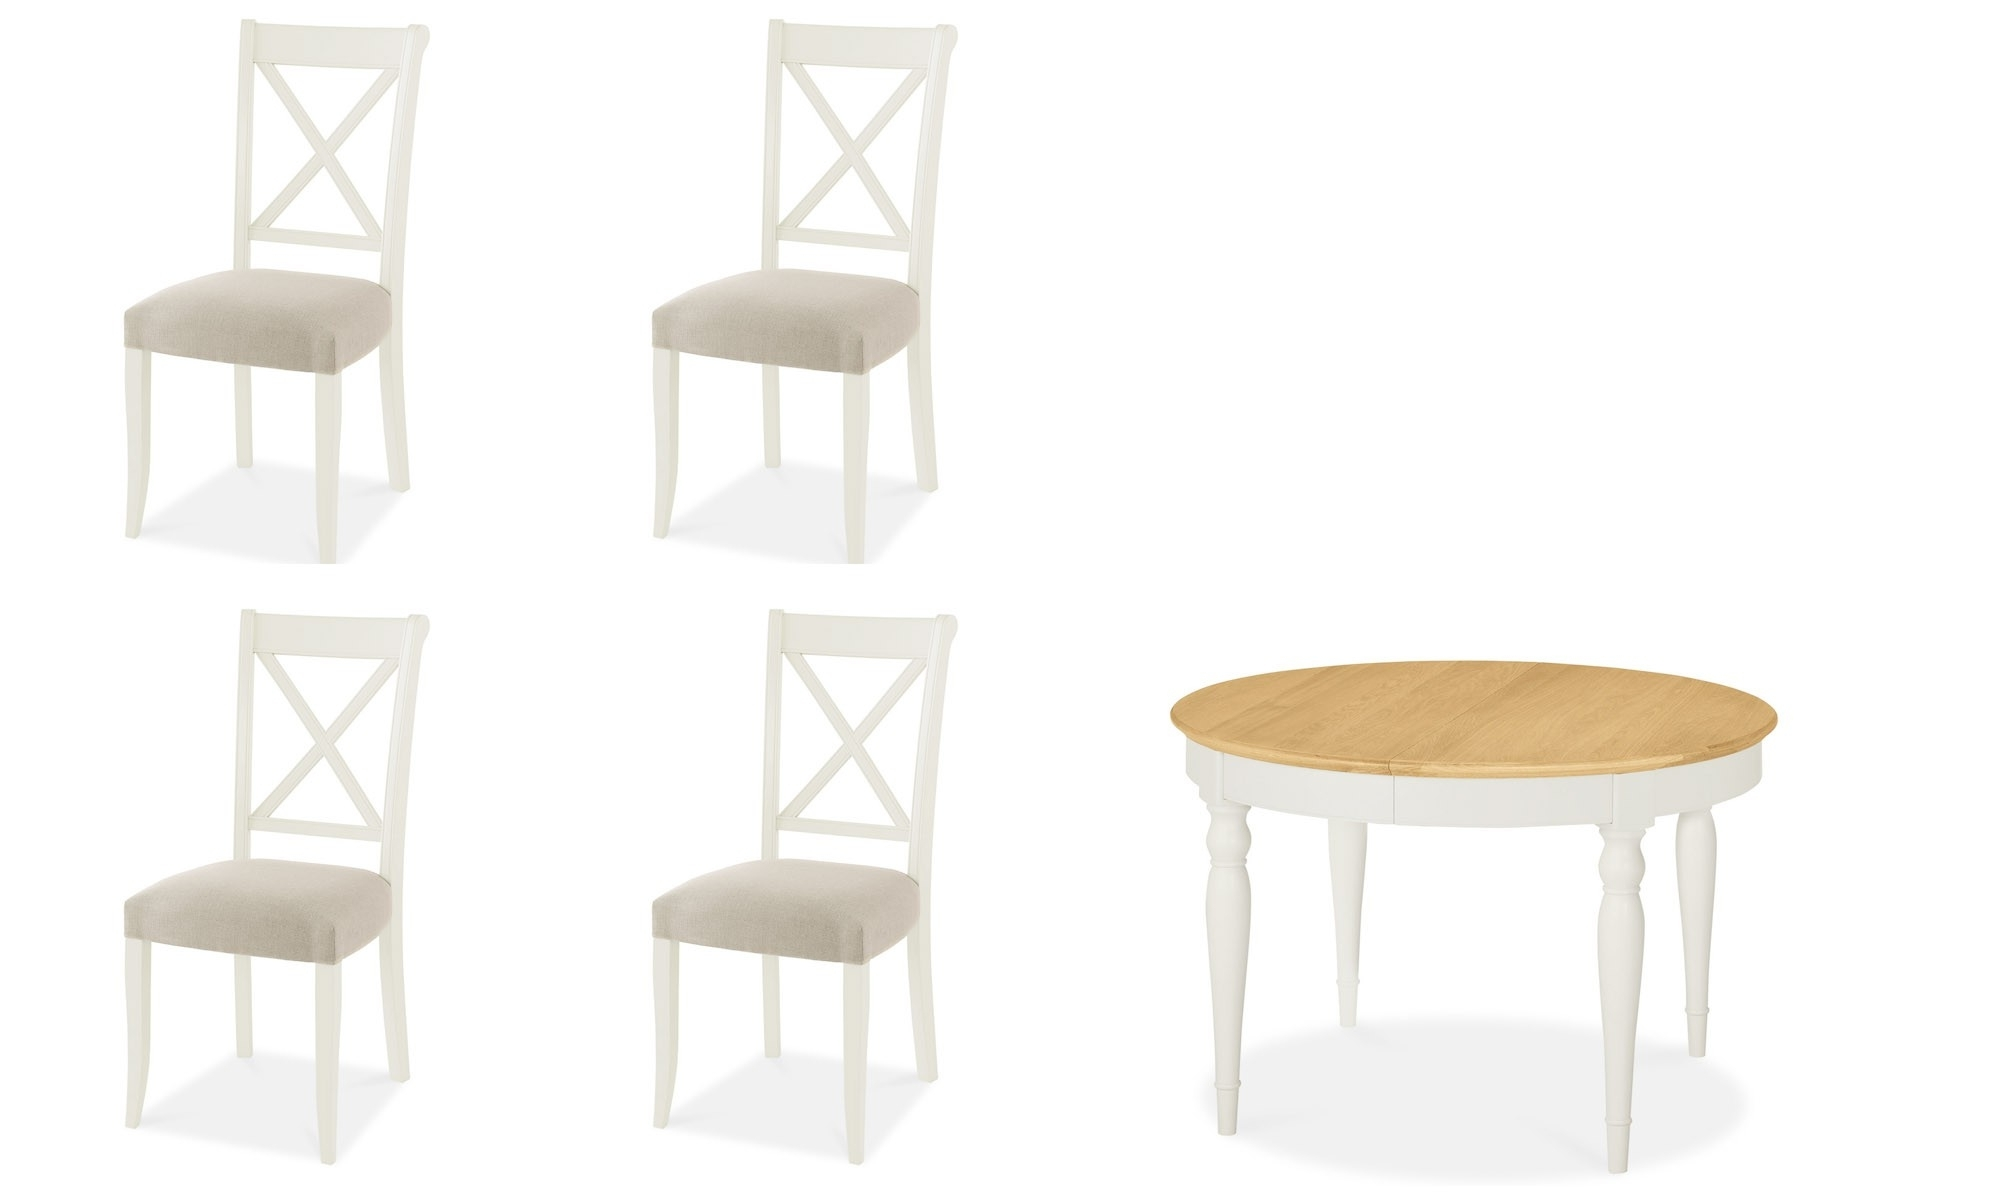 Georgie – Round Extending Dining Table And Chairs In Cream – Oak Top Intended For Recent Extending Dining Tables And 4 Chairs (View 12 of 25)